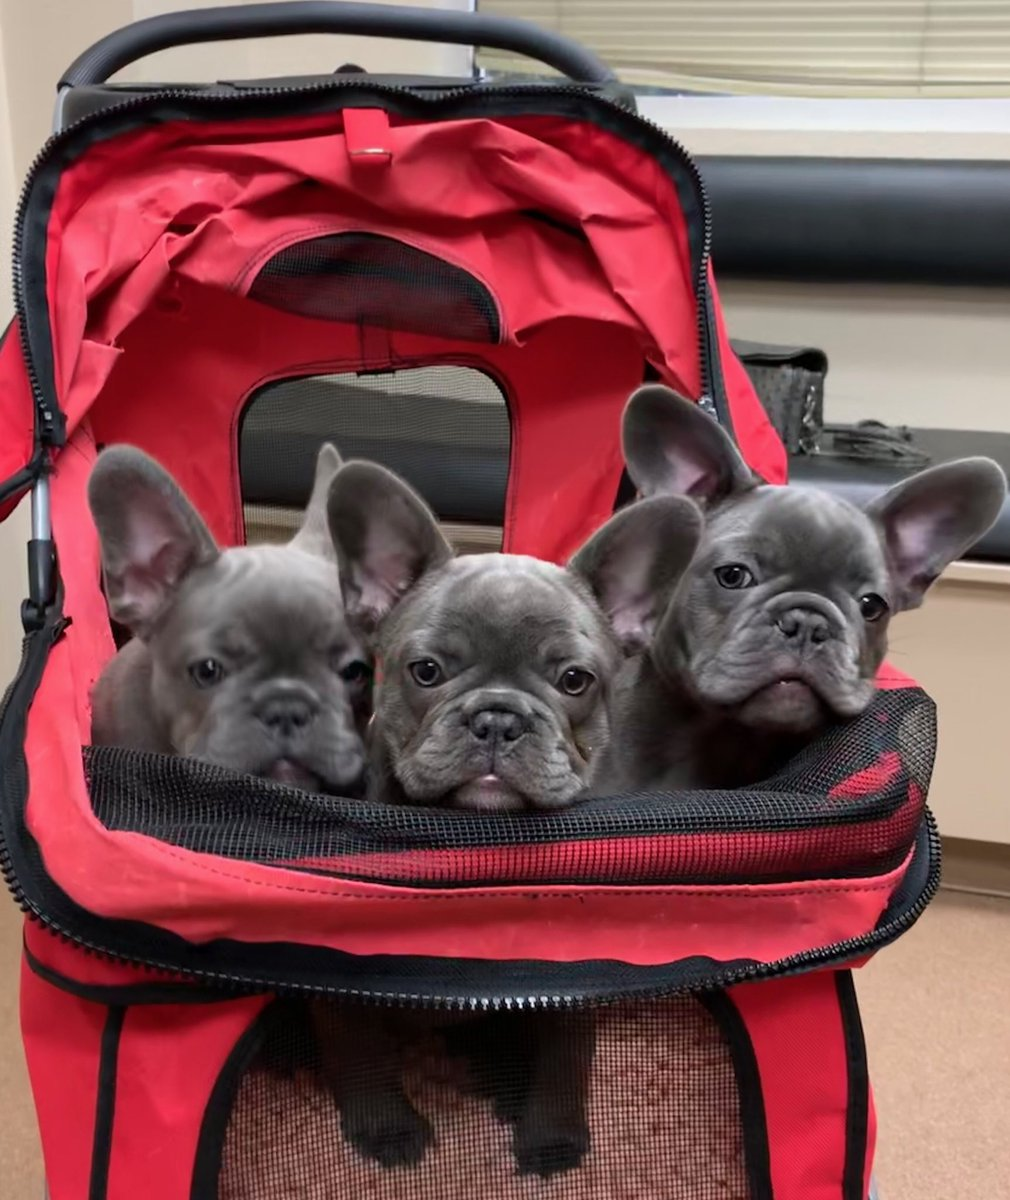 Just me and my brothers  @oakleybfrenchie #bluefrenchie #bluefrenchbulldog #bluefrenchbulldogs #frenchie #frenchiesofinstagram #frenchies #frenchiepuppy #frenchbulldog #frenchbulldogs #bulldog #puppy #puppies #puppiesofinstagram #dog #dogsofinstagram #dogs #animals #animal<br>http://pic.twitter.com/hRXCrcn827